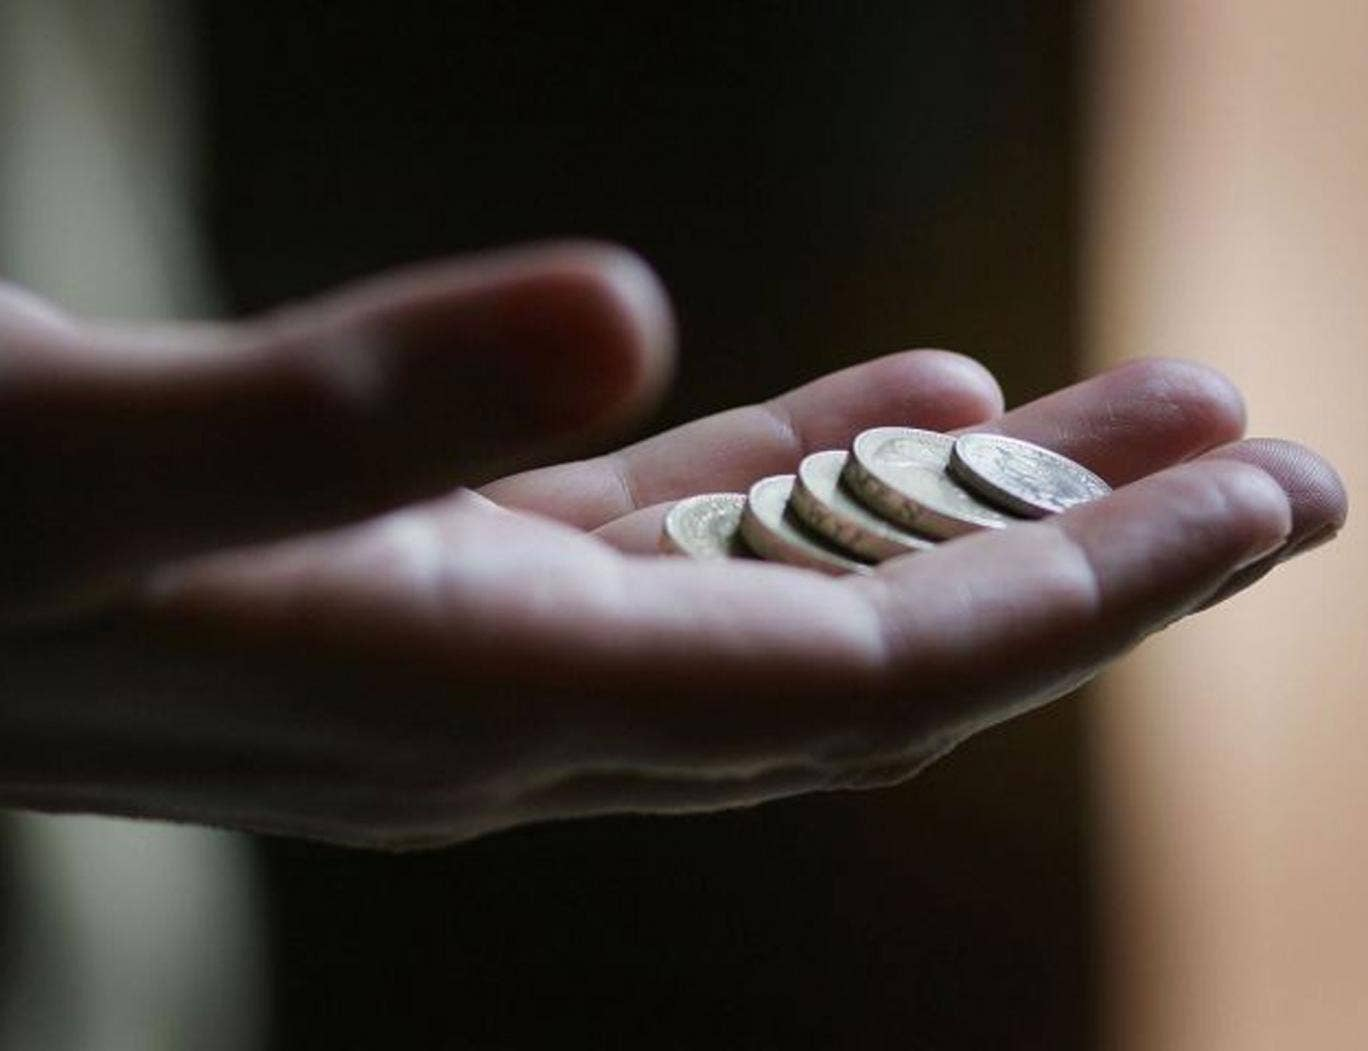 Peer-to-peer lending can pay off – but there are pitfalls